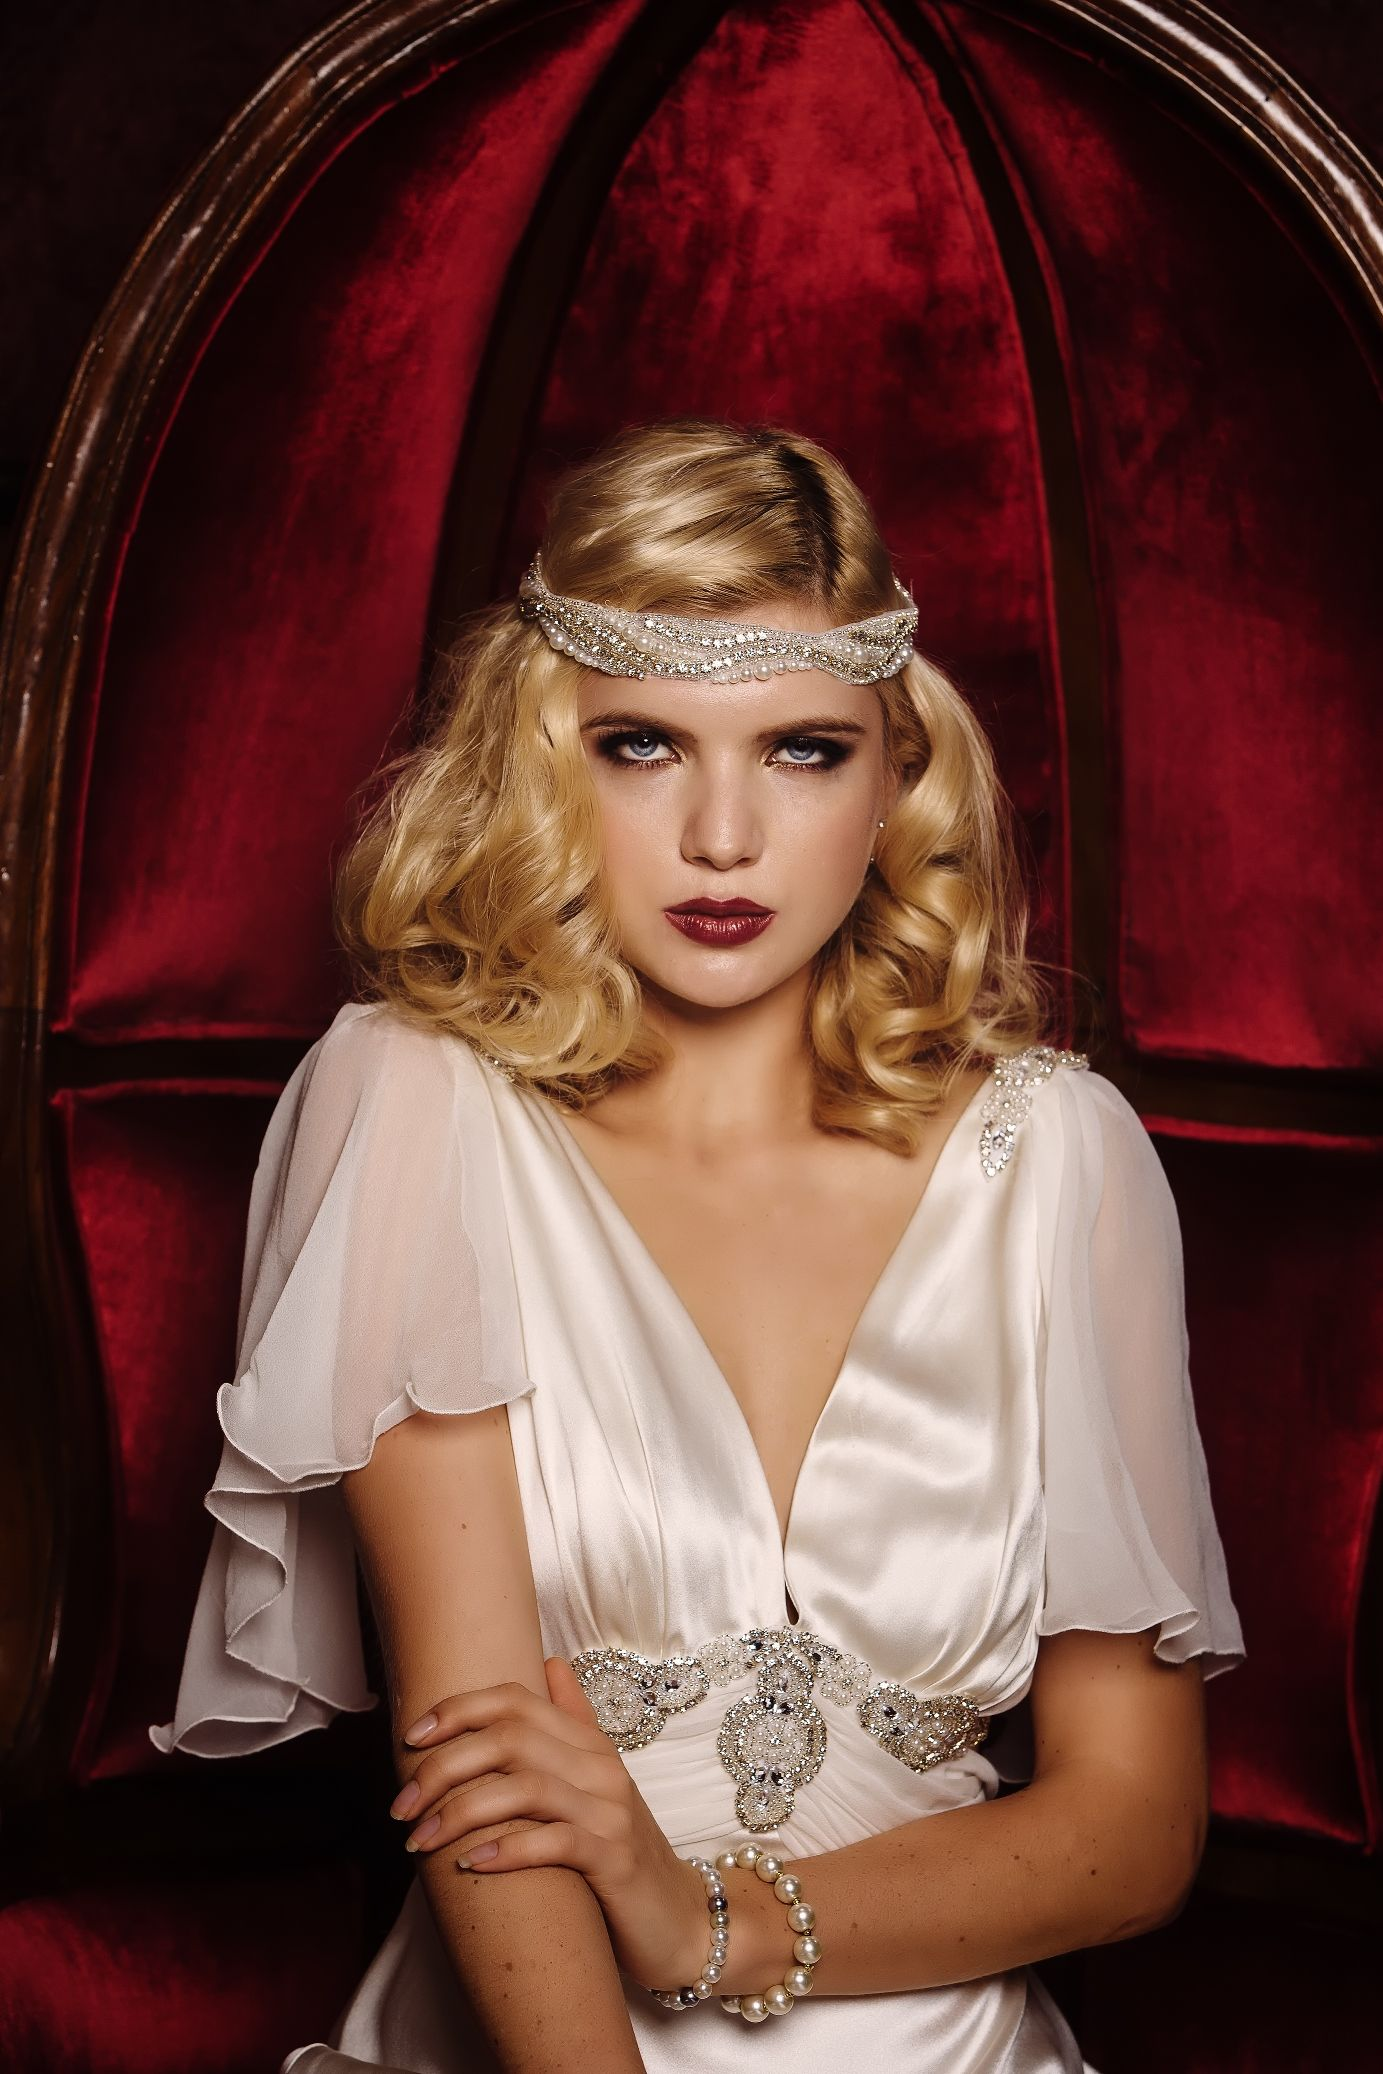 778881a3f6 Glamorous Old Hollywood Bridal Shoot with Cathleen Jia Wedding Dresses &  Accessories